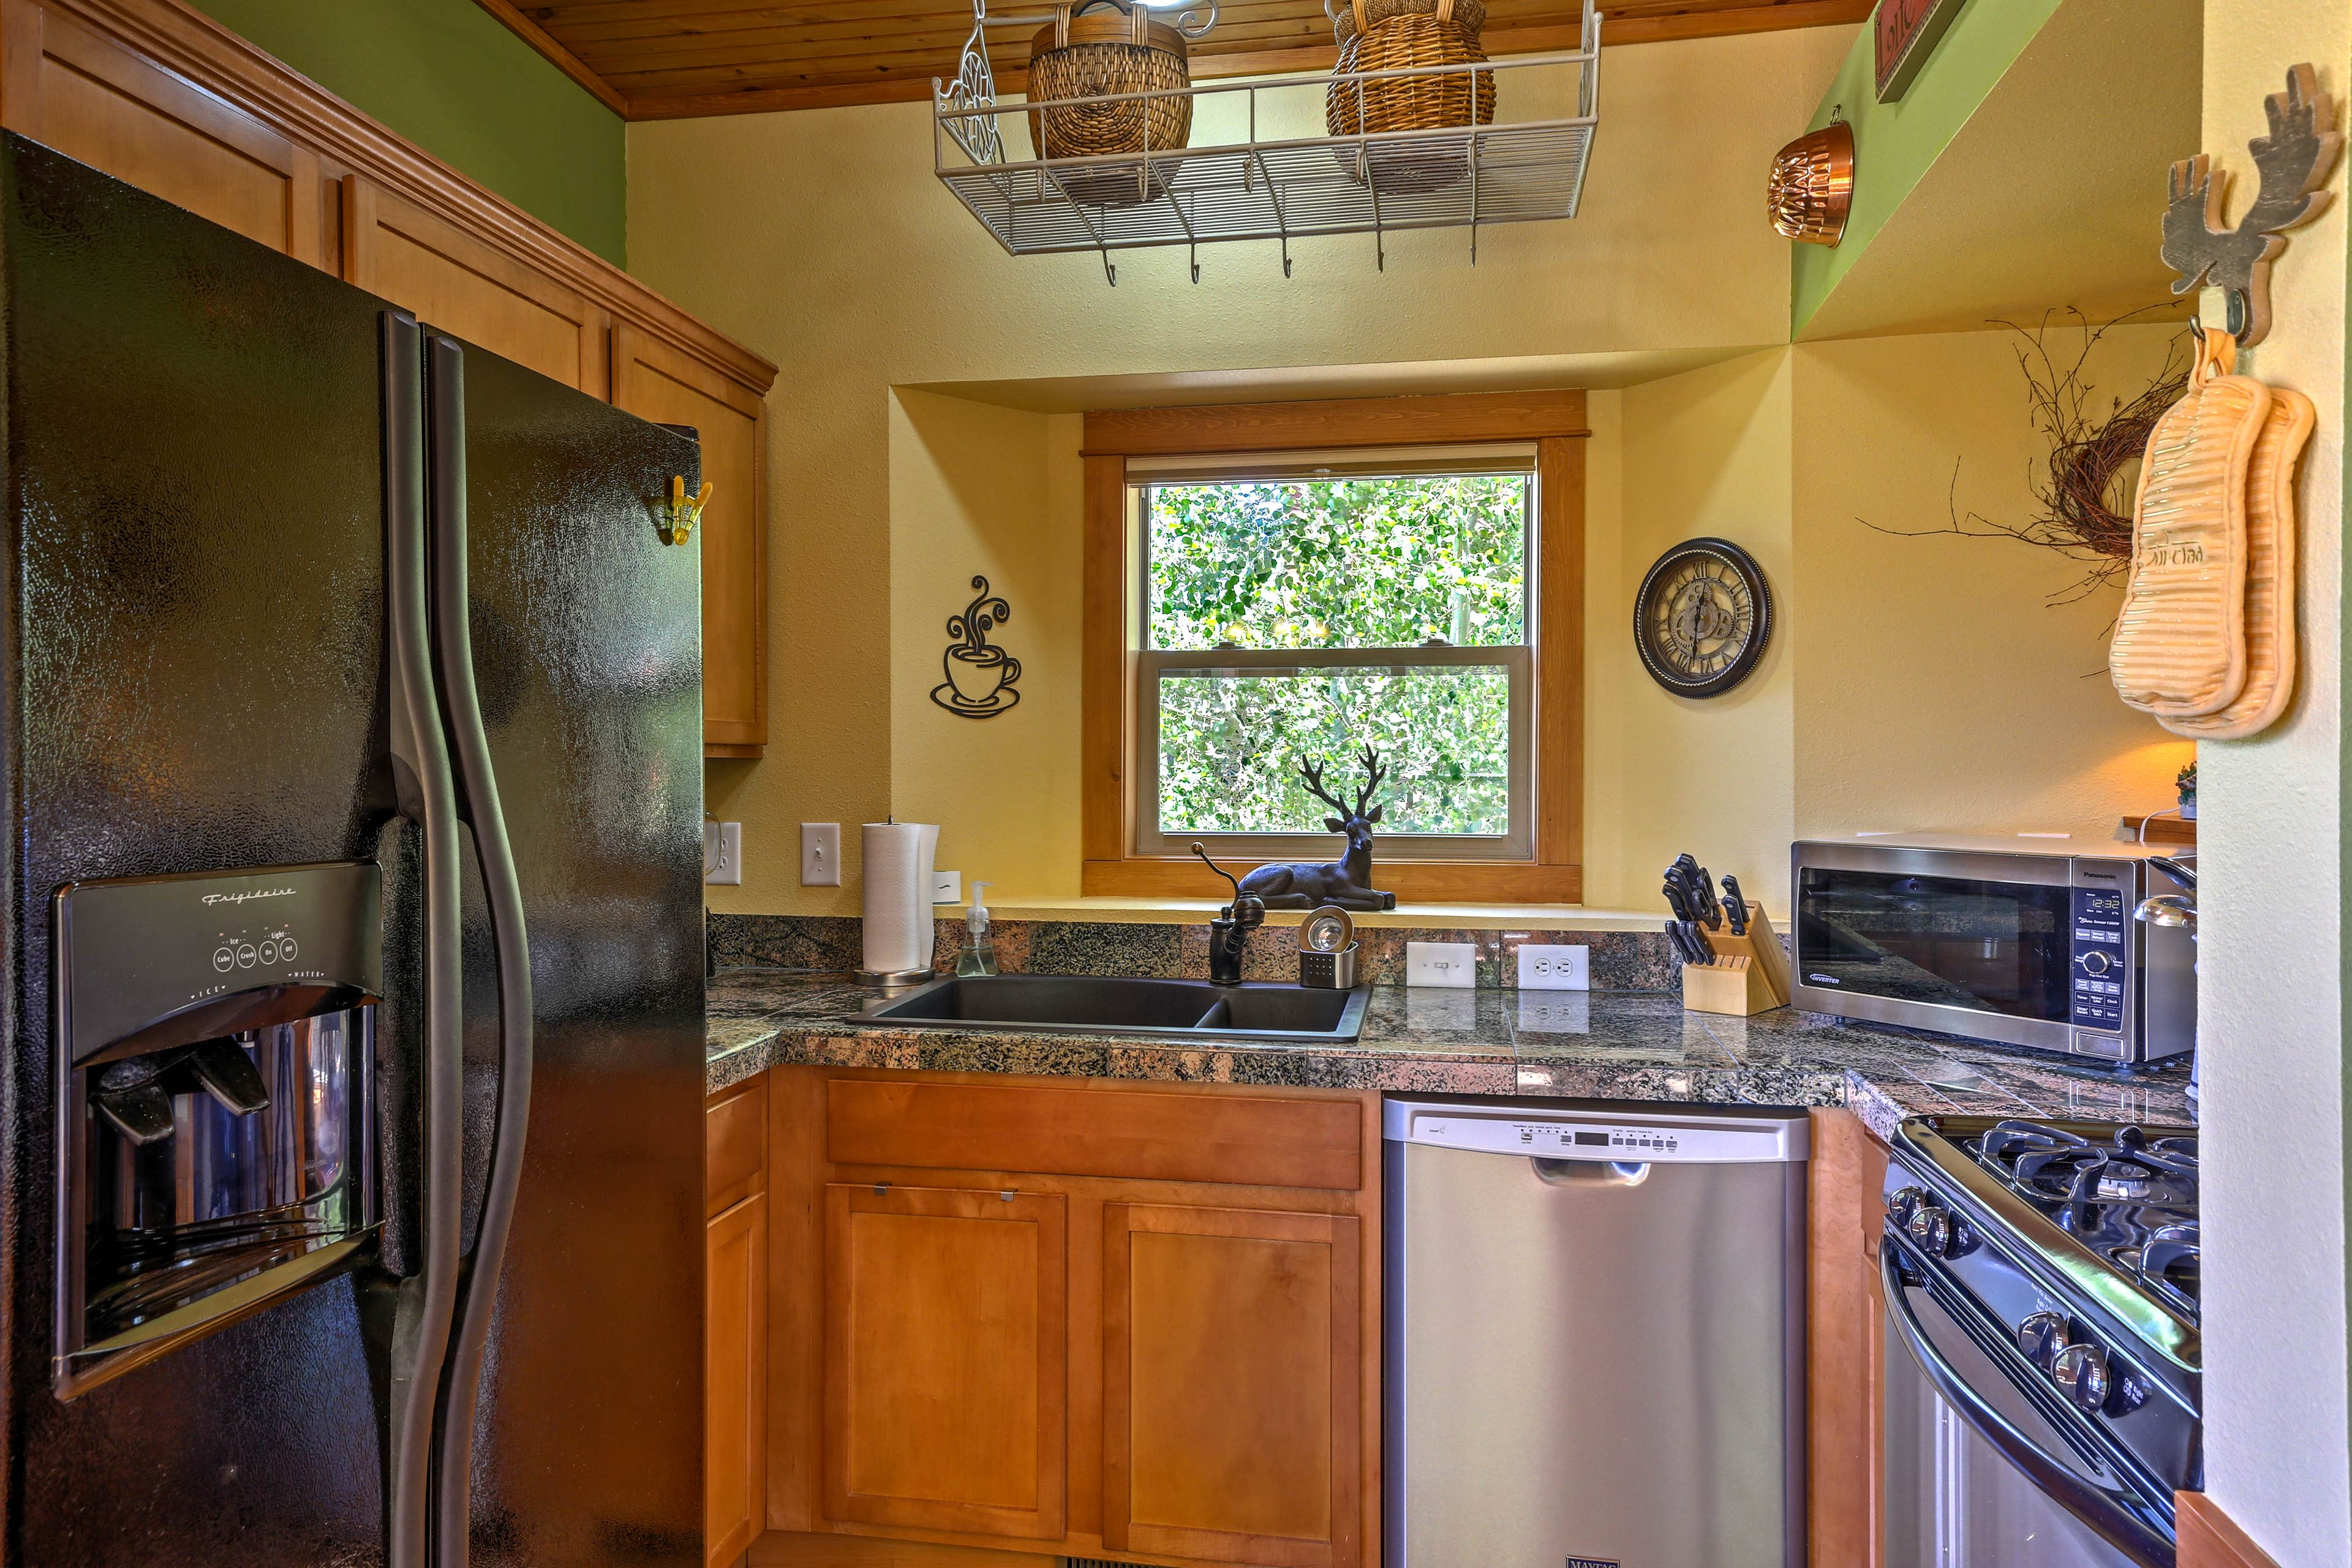 Pack a picnic lunch for your trip to Grand Lake in the fully equipped kitchen.